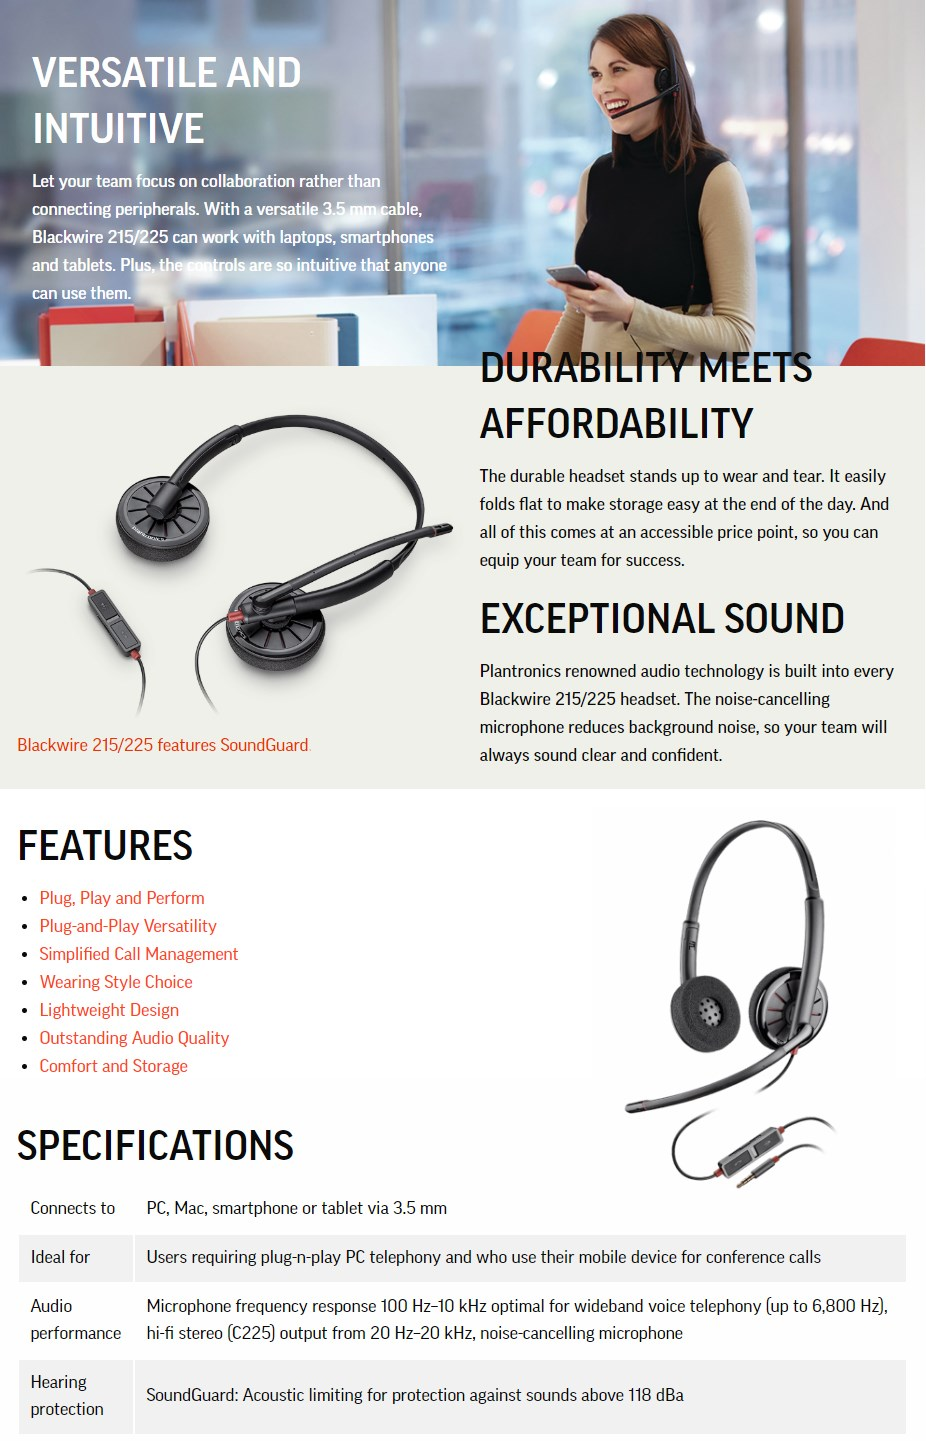 Plantronics Blackwire 225 Wired Binaural Headset - Overview 1